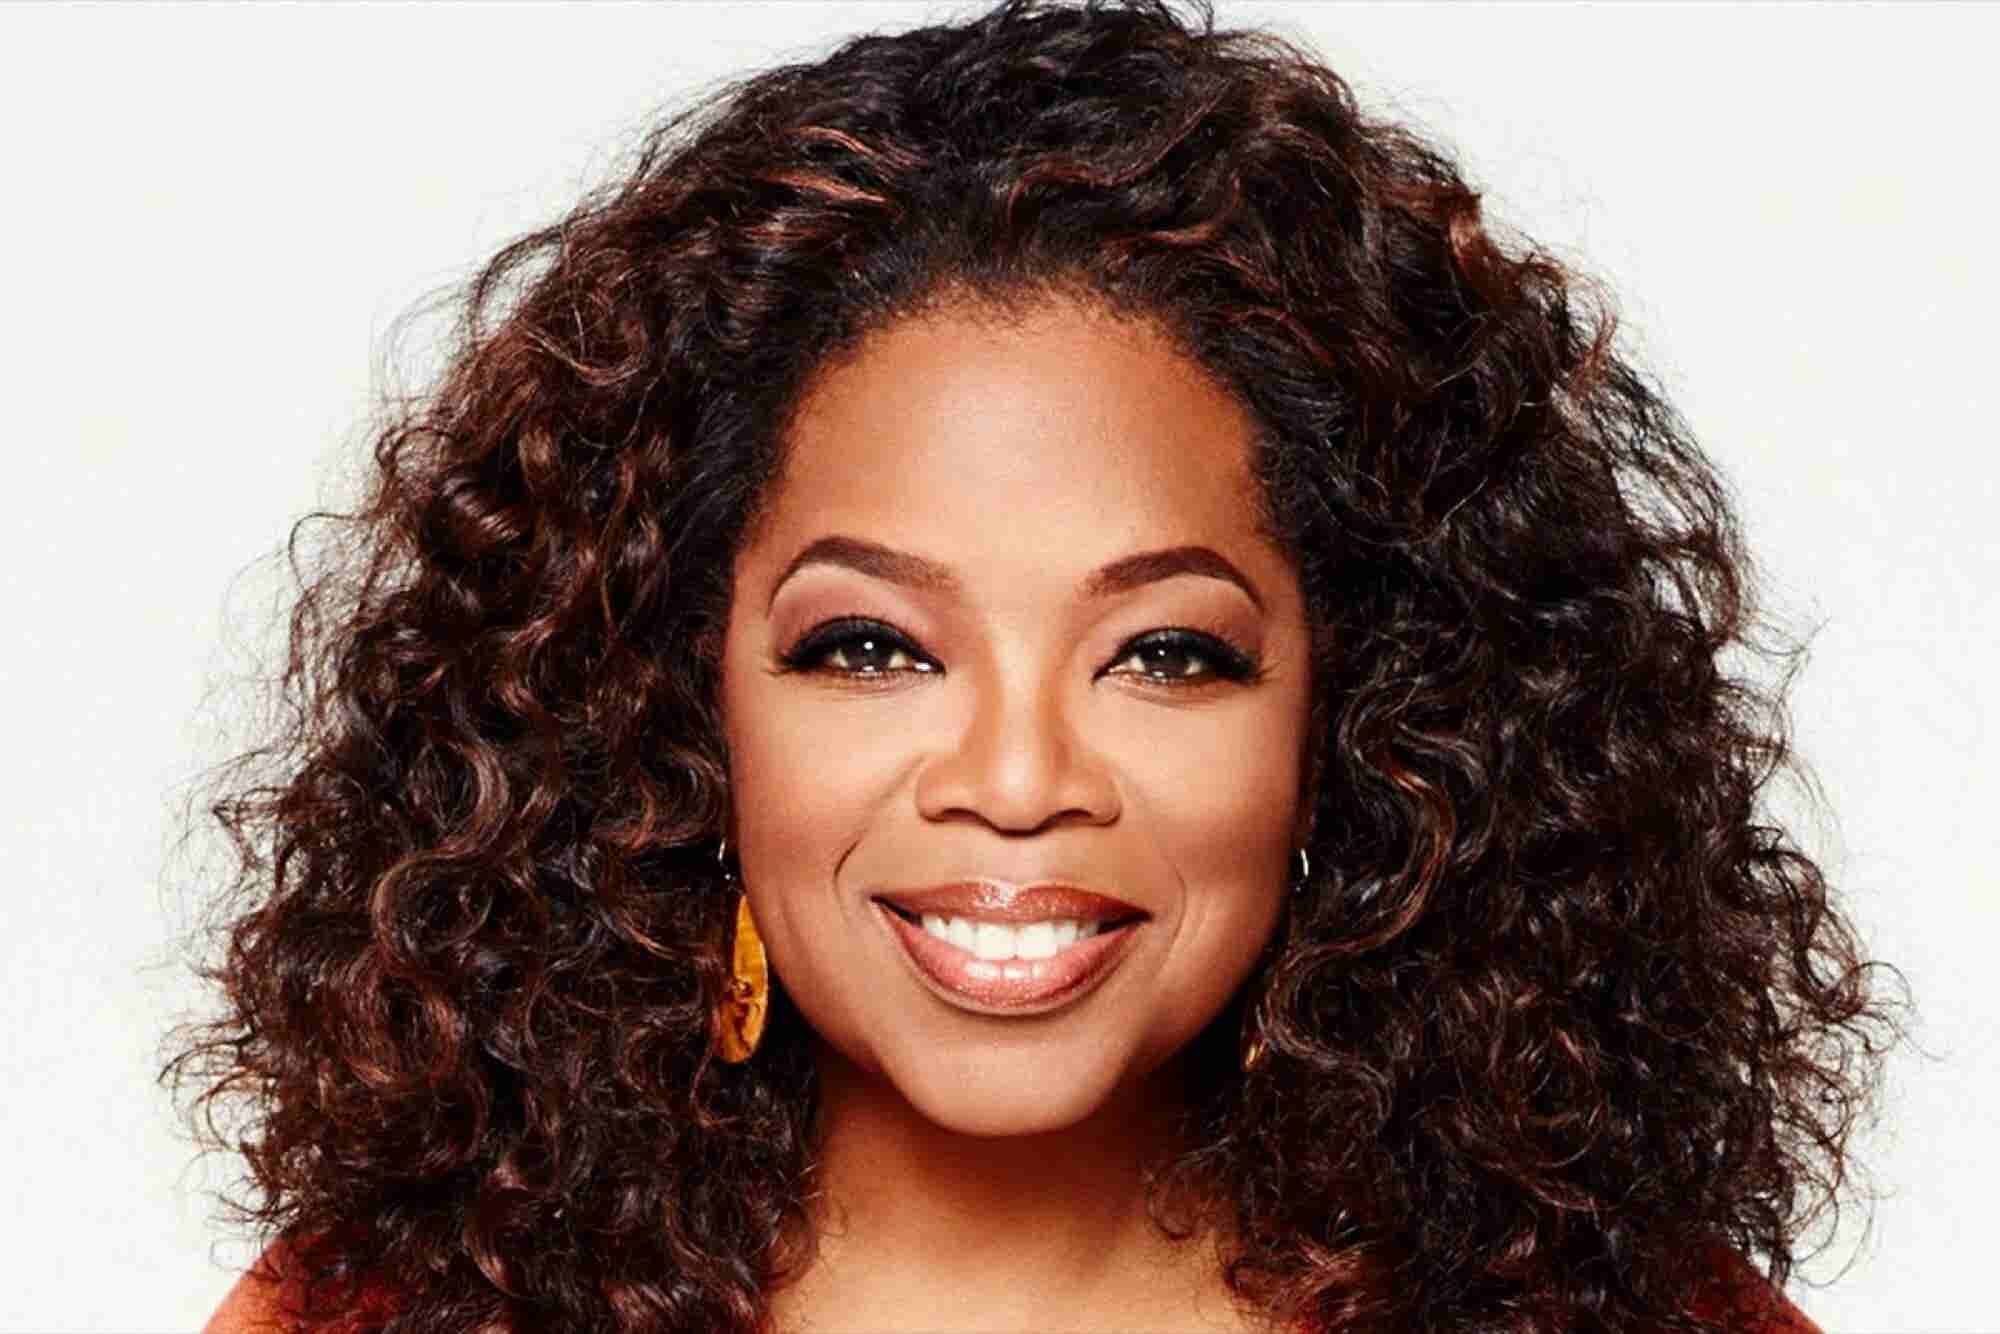 Apple Picks Winfrey & Kerala Picks Blockchain. 4 Things to Know Today